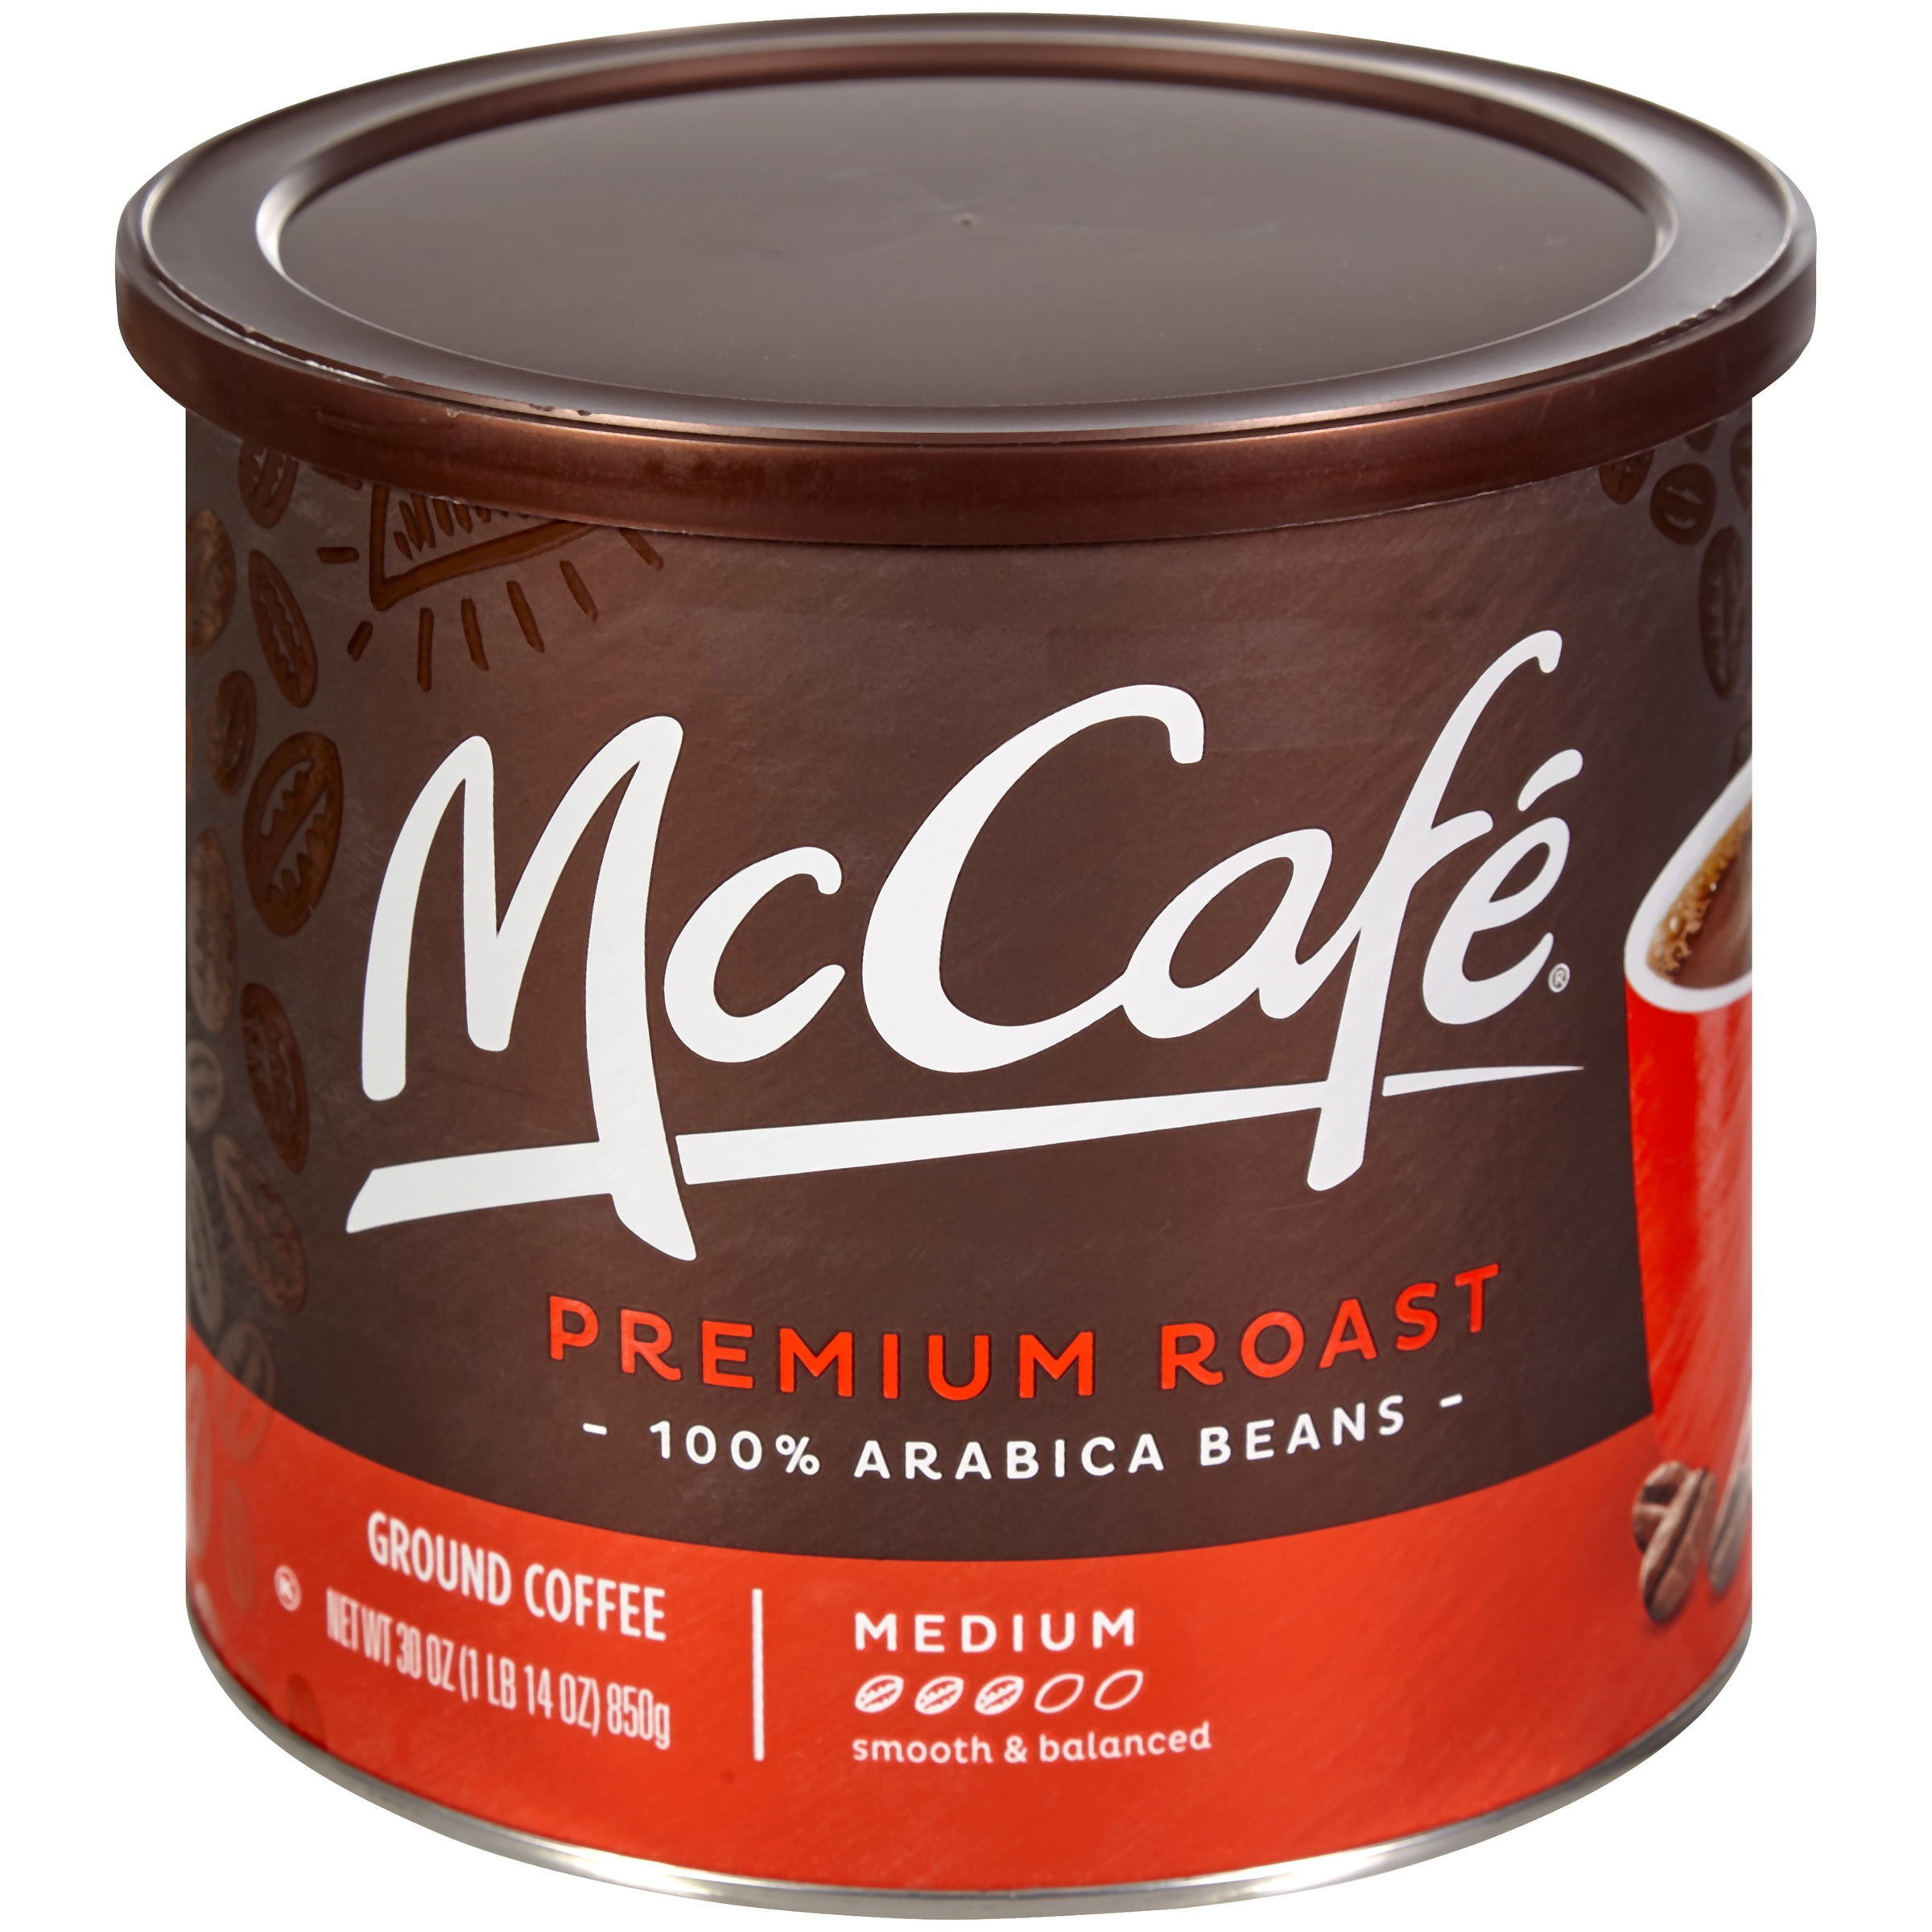 McCafé Premium Roast Ground Coffee 30 oz. Canister